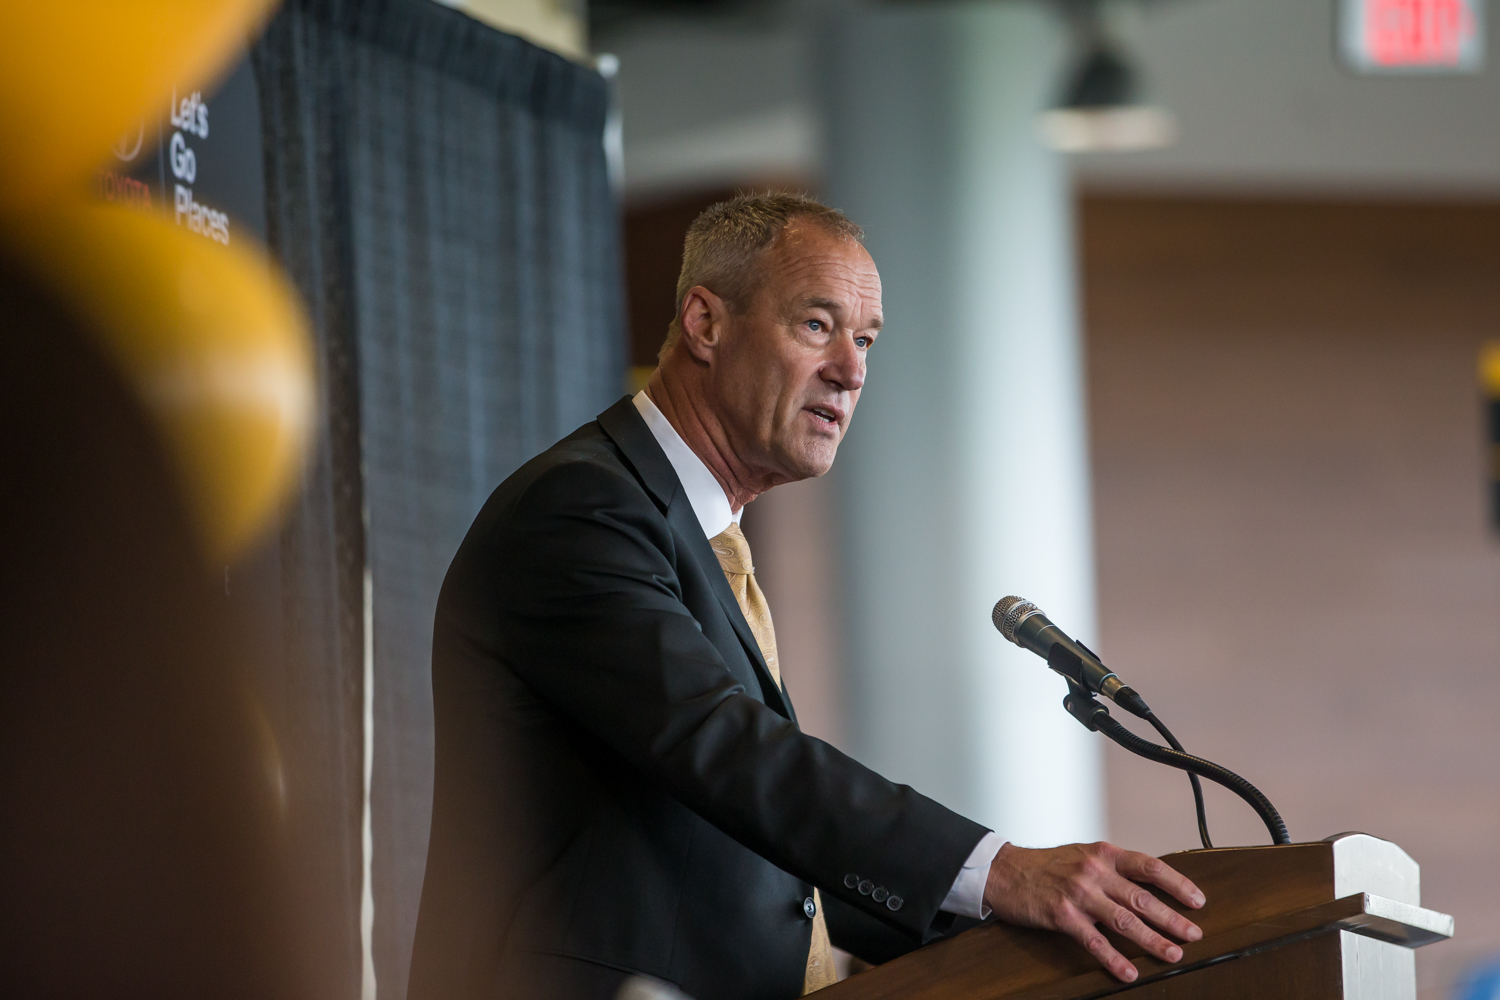 NKU+President+Ken+Bothof+gives+his+remarks+during+the+press+conference+for+the+welcoming+of+the+new+Men%27s+Basketball+Head+Coach+Darrin+Horn.